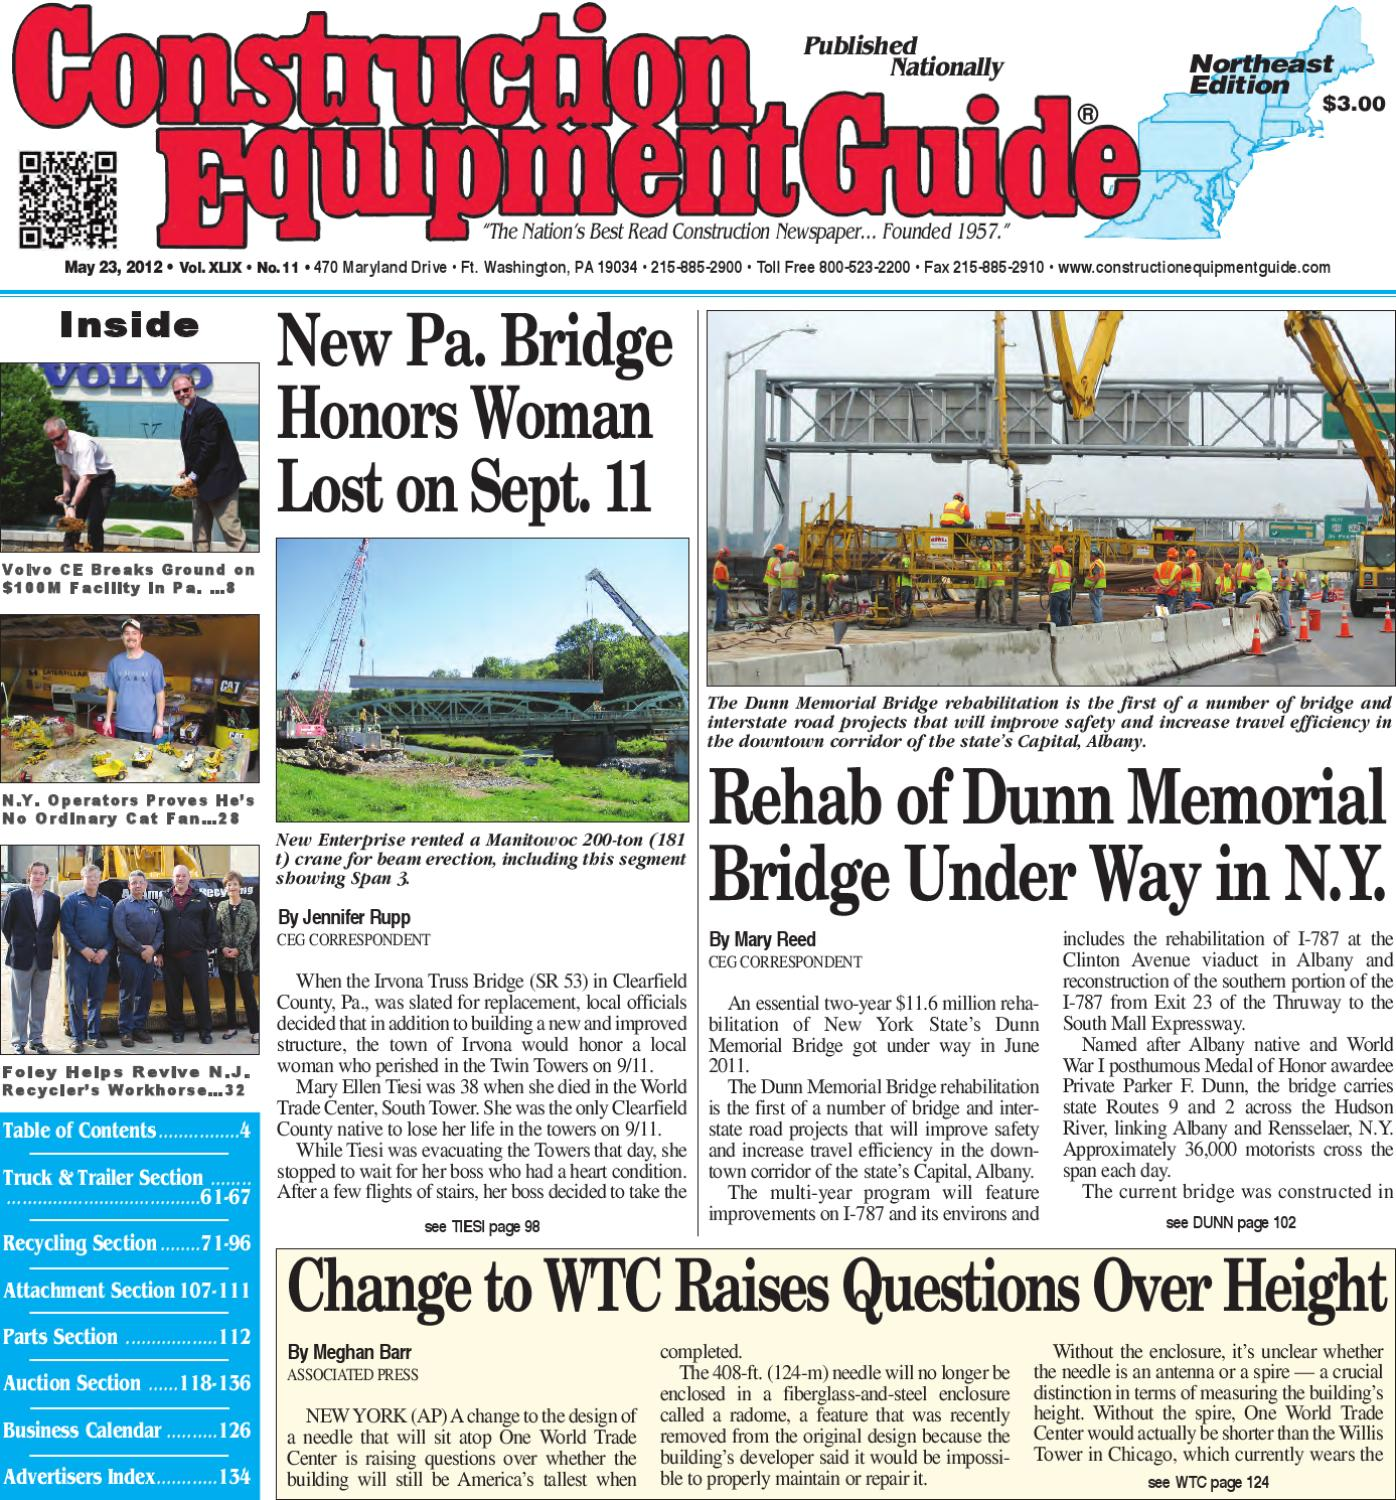 Northeast #11, 2012 by Construction Equipment Guide - issuu